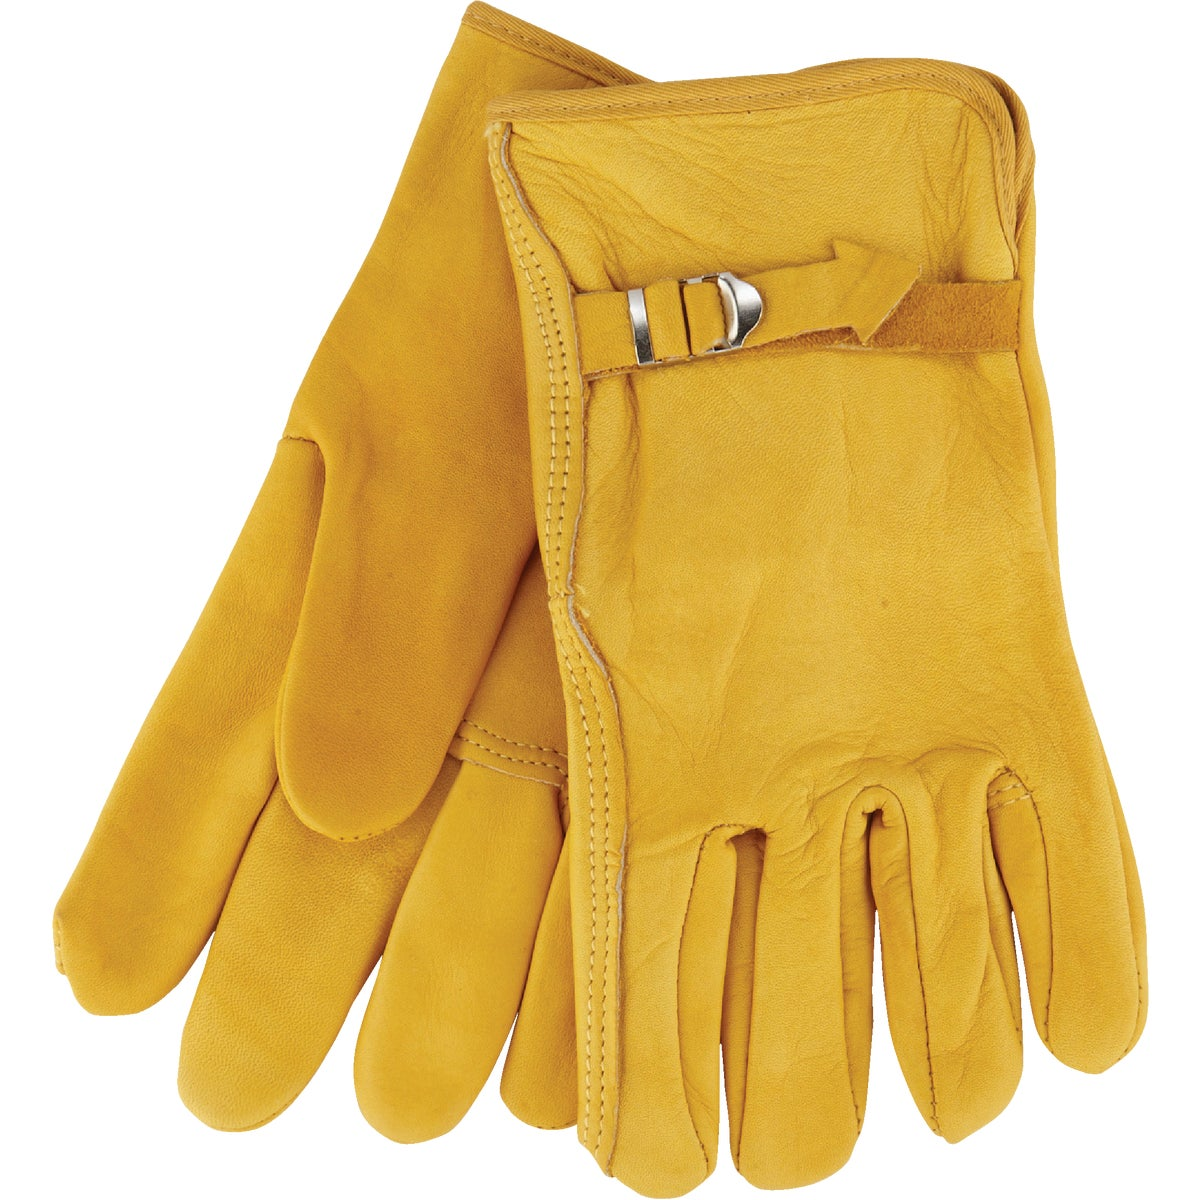 MED GRAIN DRIVER GLOVE - 713847 by Do it Best